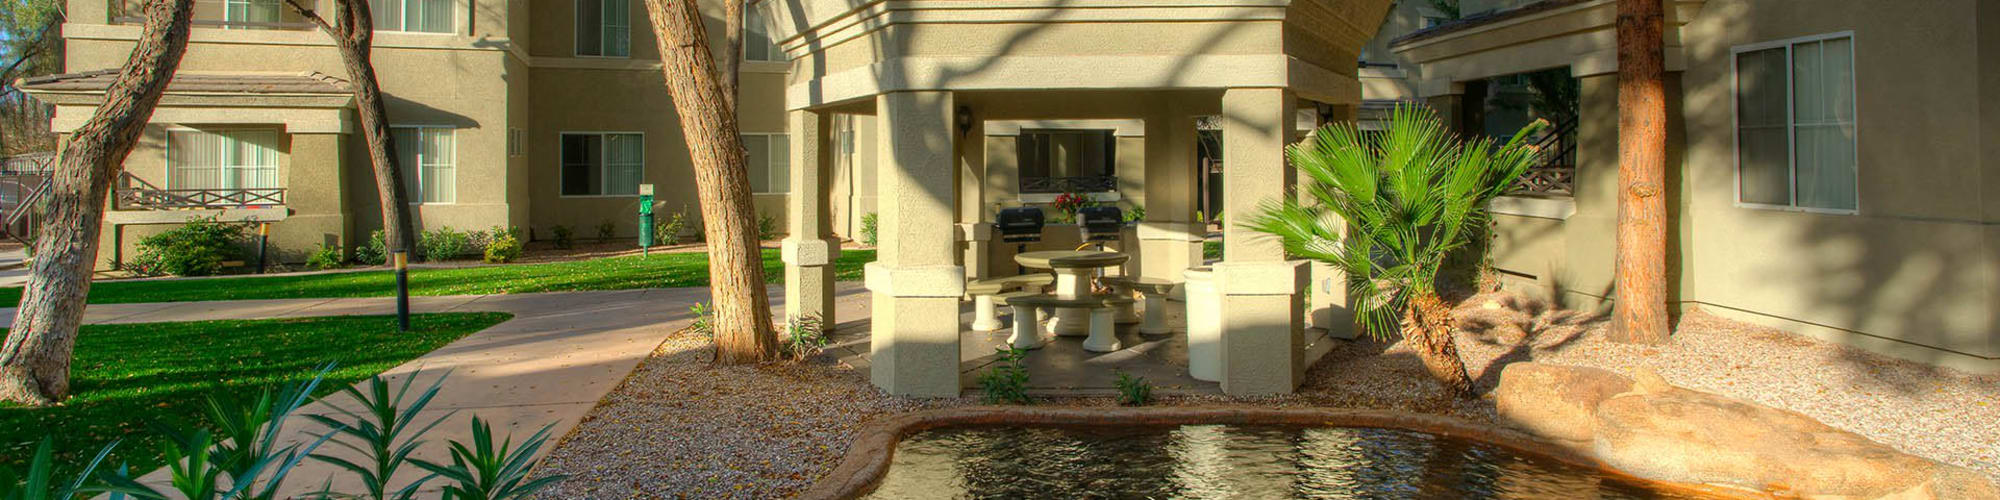 Amenities at The Reserve at Gilbert Towne Centre in Gilbert, Arizona